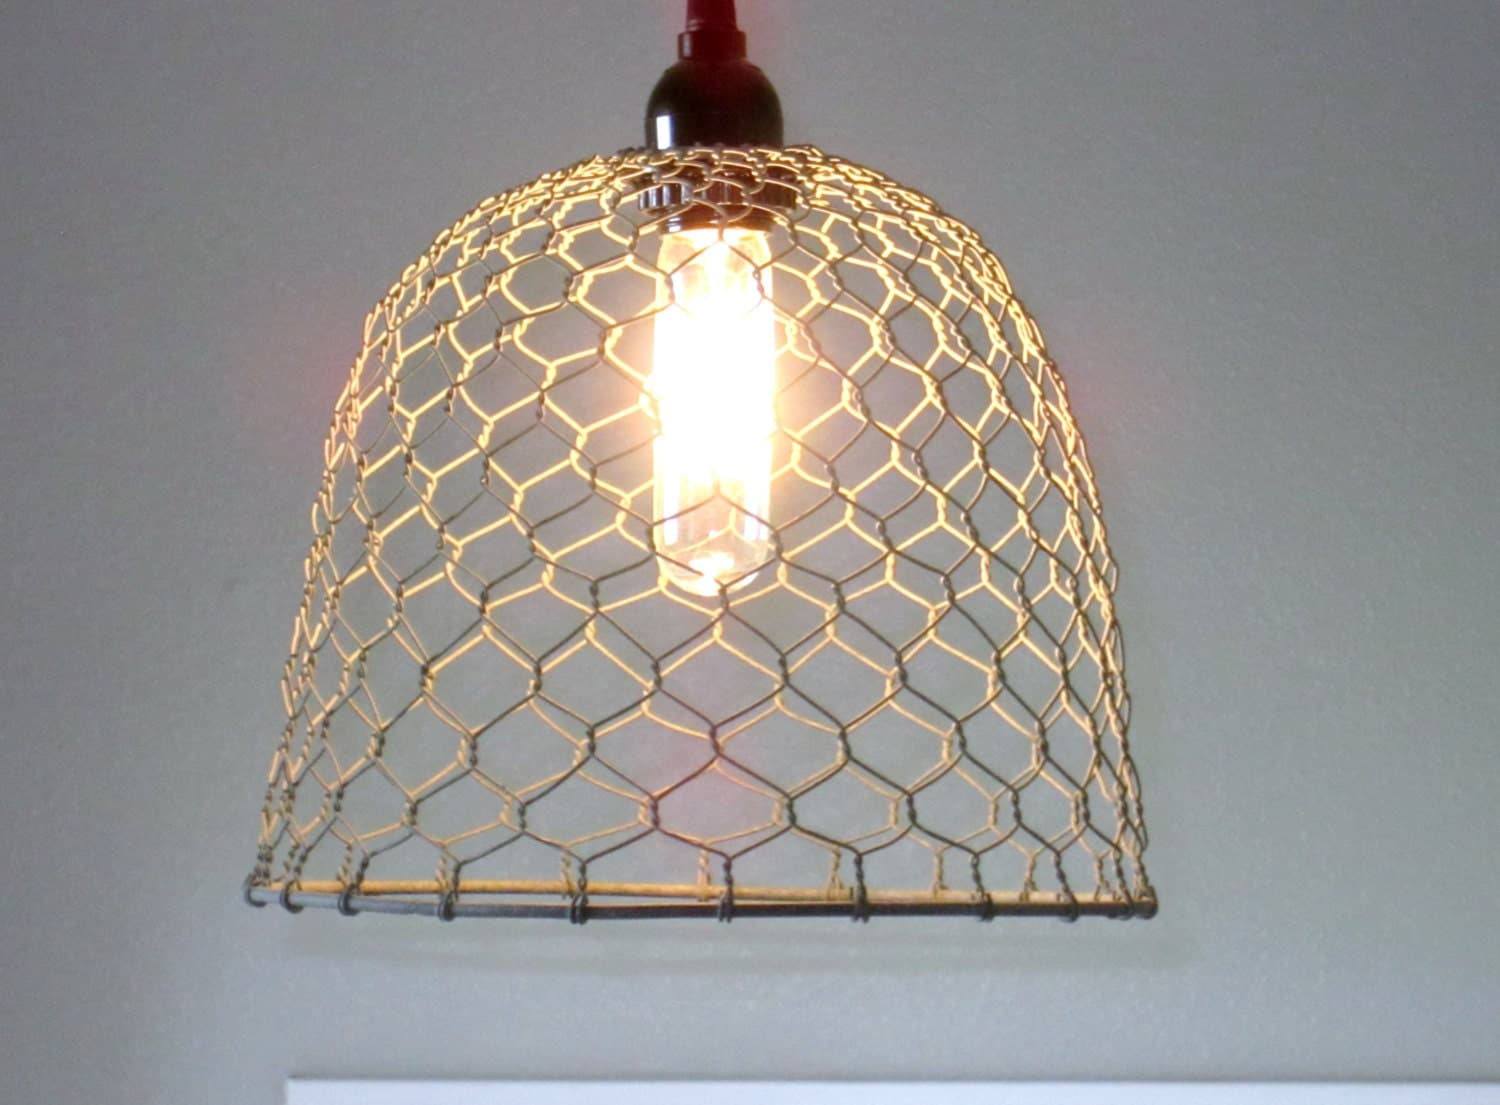 farmhouse chandelier farmhouse kitchen lighting Rustic Pendant Lighting chicken wire farmhouse pendant light lighting rustic lighting kitchen lighting